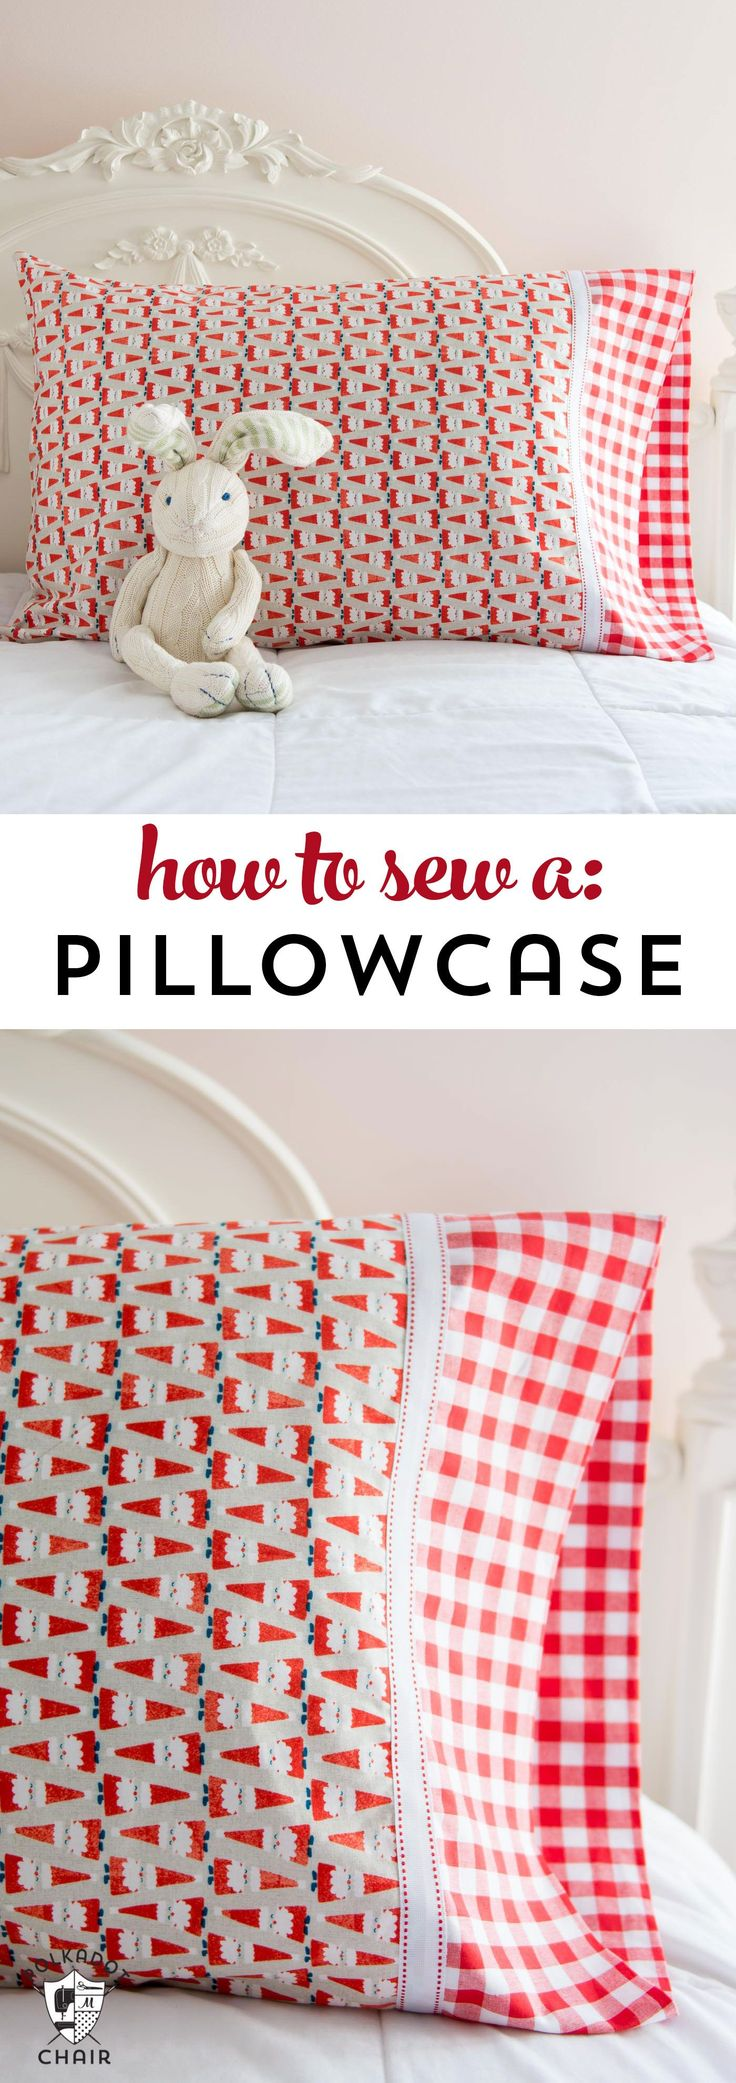 best simple sewing projects images on pinterest sewing ideas